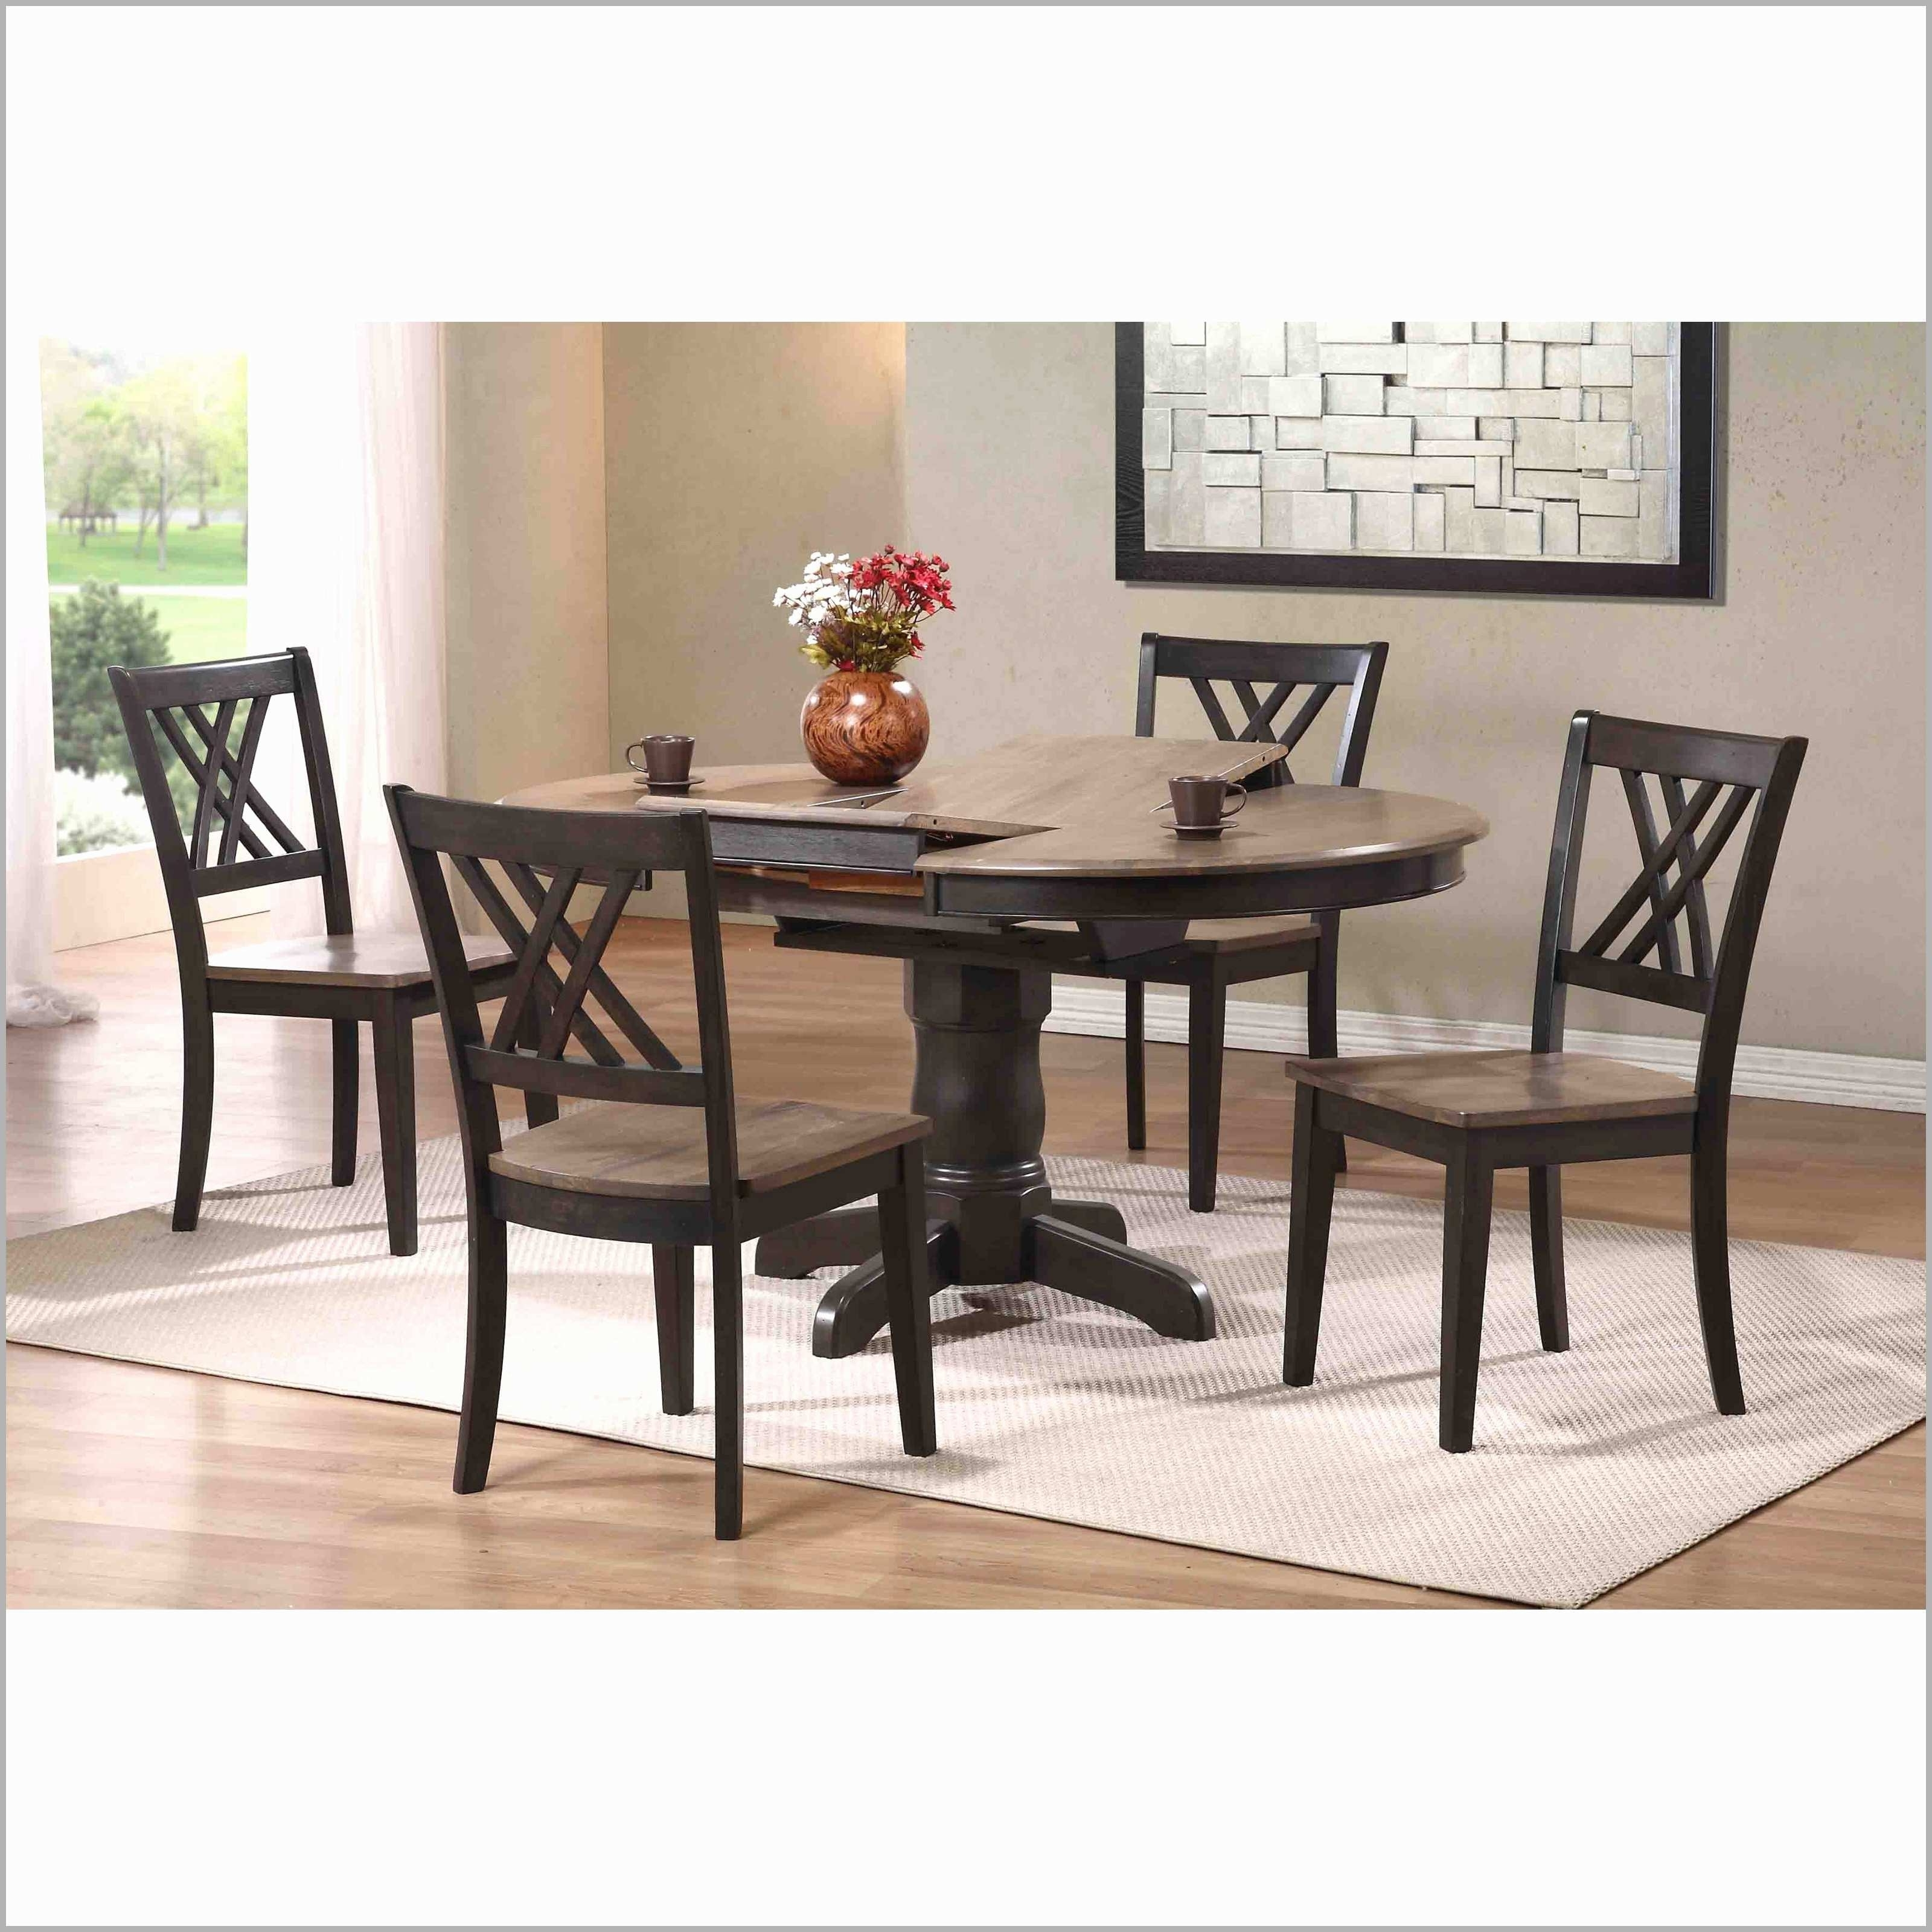 Current Extendable Dining Tables For Small Spaces Best Of 79 Elegant Stocks With Small White Extending Dining Tables (View 13 of 25)